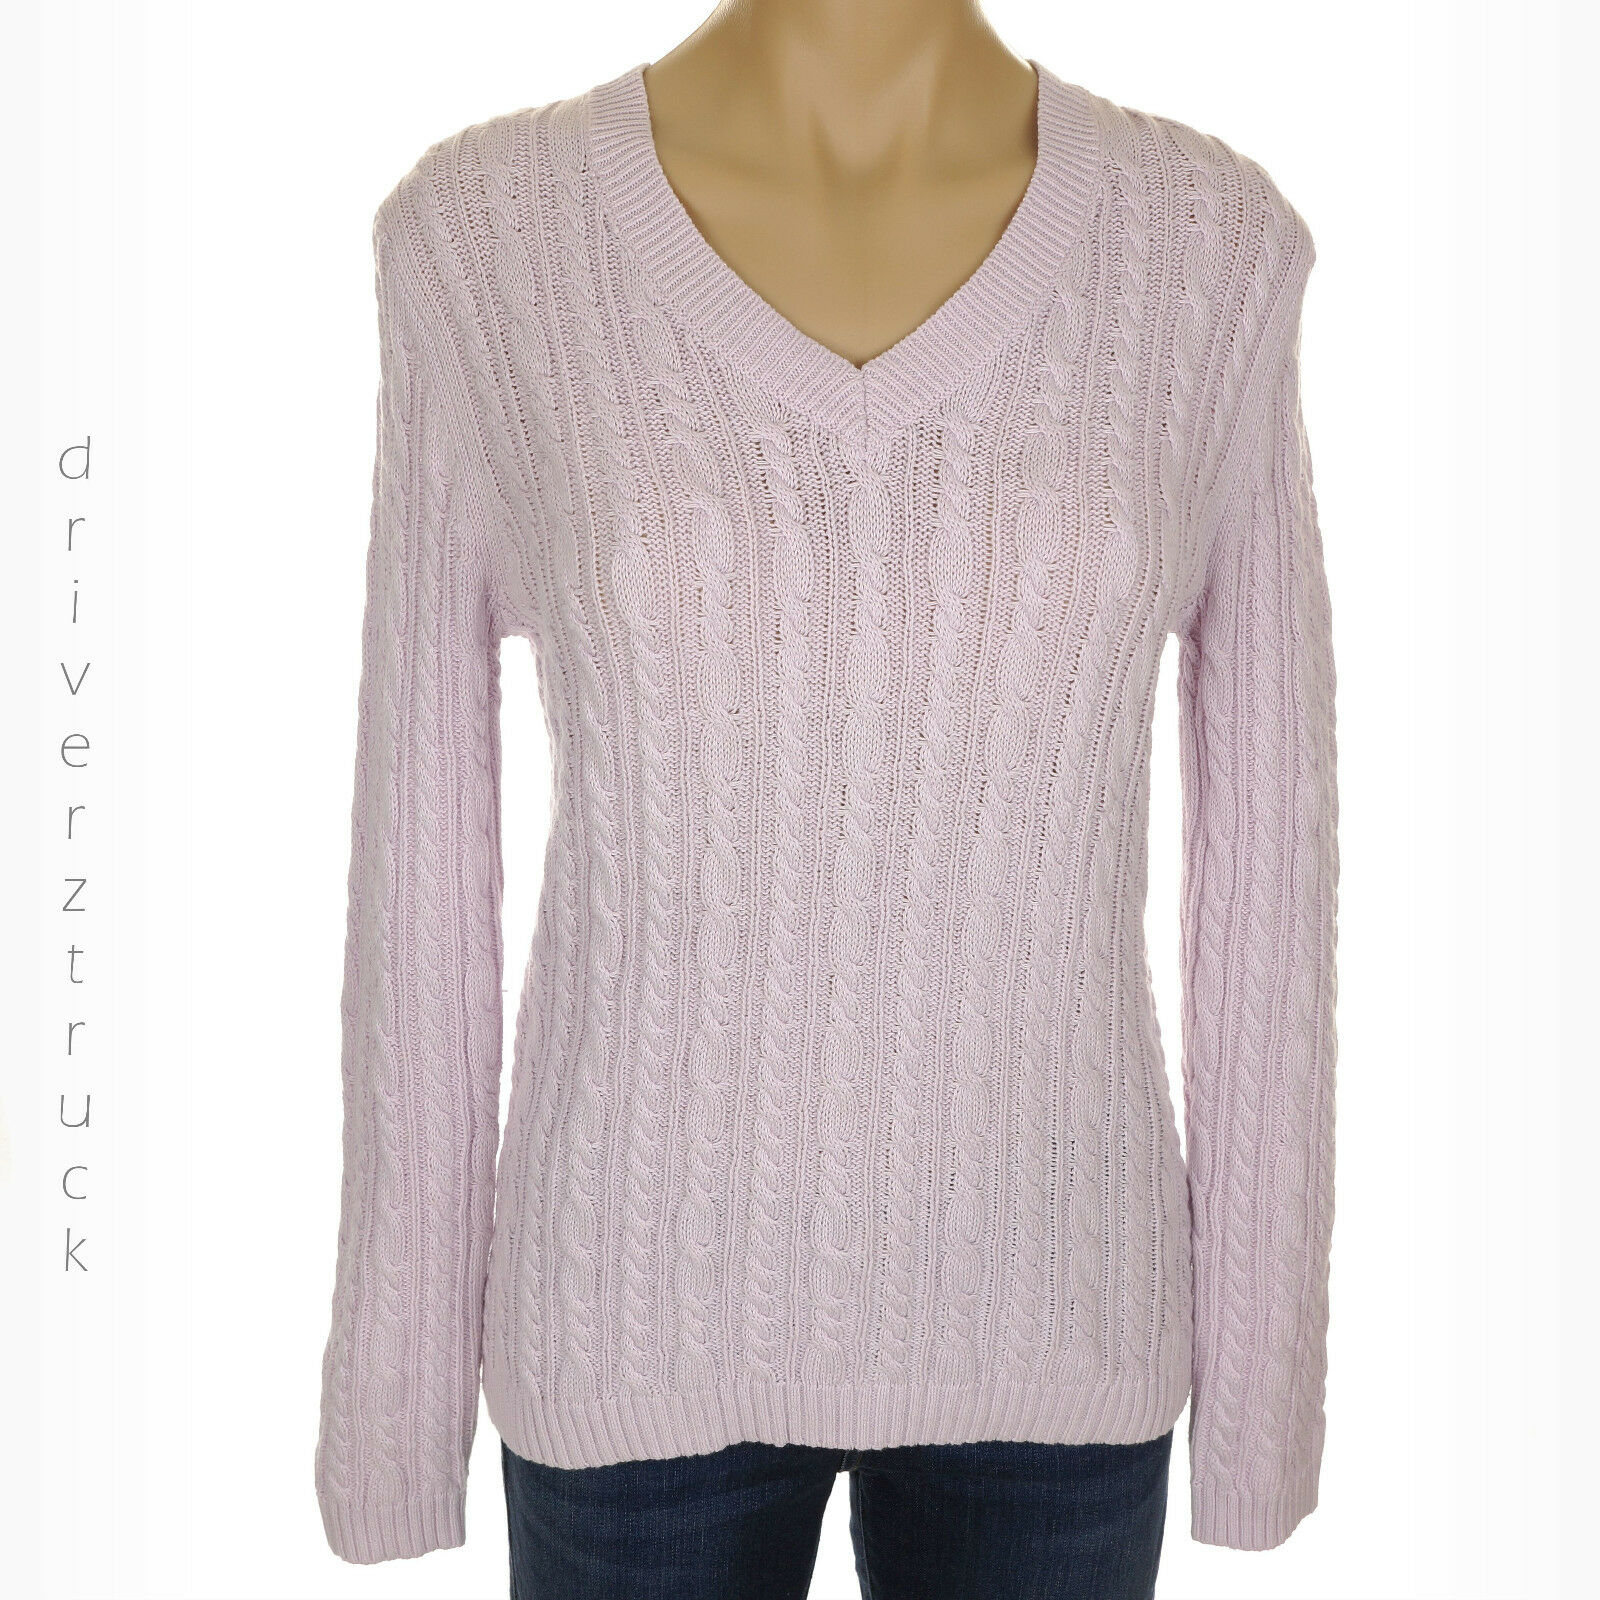 CROFT & BARROW New PETITE SMALL Cable Knit LAVENDER SWEATER Pastel ...